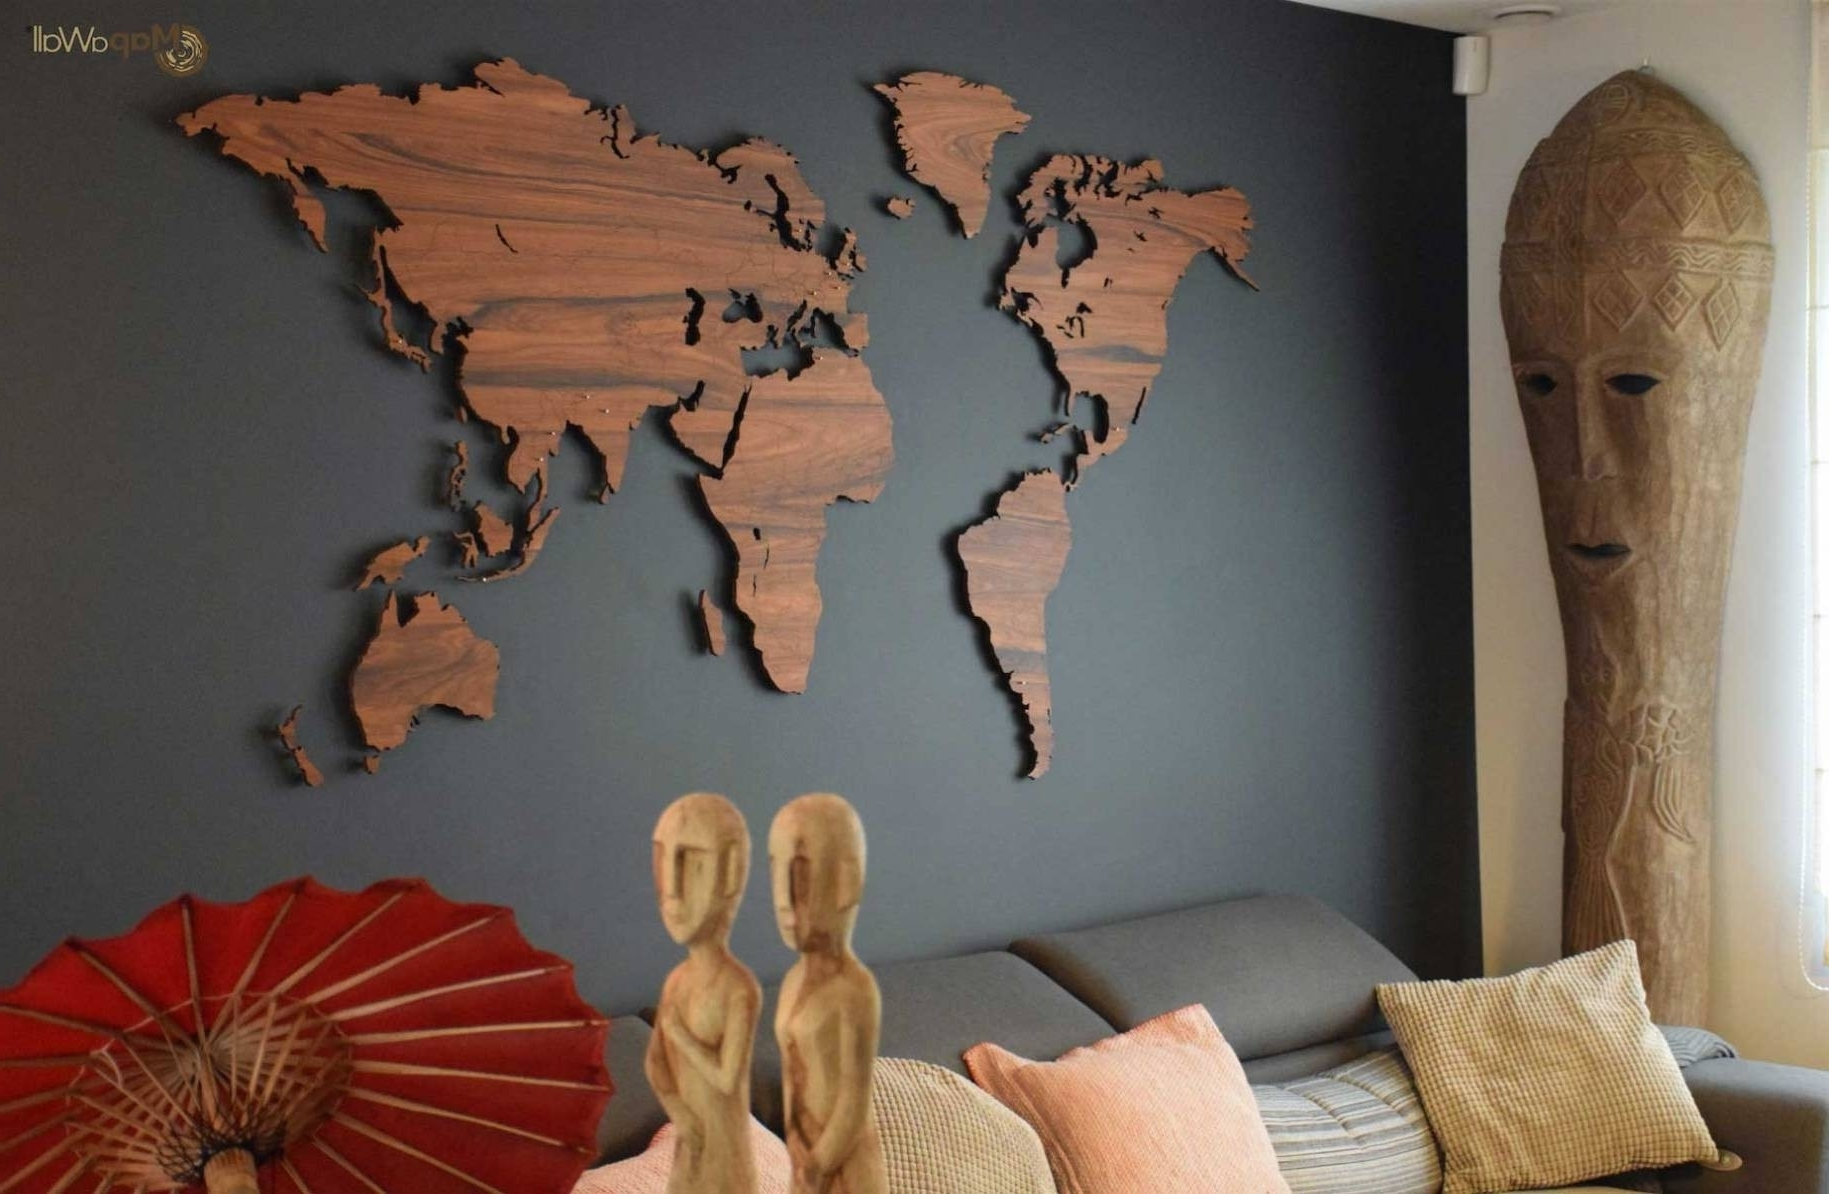 Best And Newest World Map For Wall Art Regarding Mapawall Wooden World Map Palisander With Country Borders Pertaining (View 8 of 15)